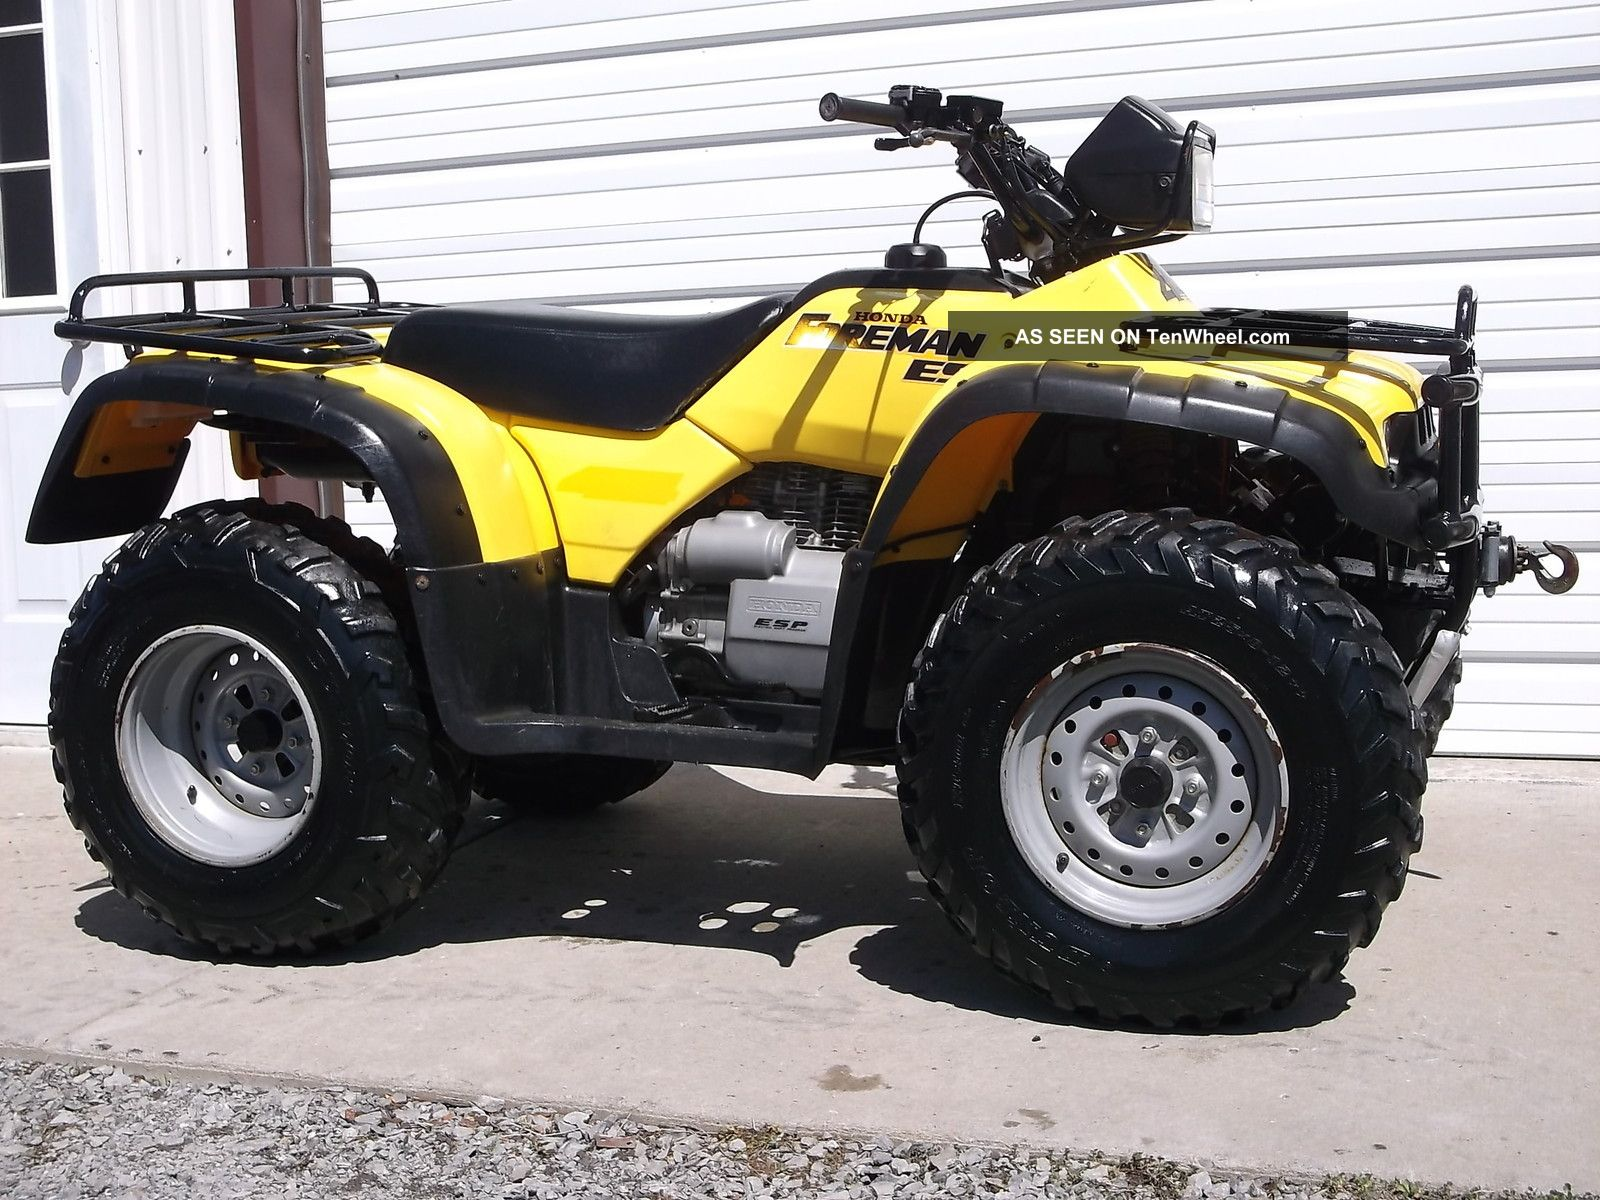 07 Honda Rancher 400 Carburetor Diagram Electrical Wiring 350 Fuel Filter 2006 Kawasaki Brute Force 450 Es Foreman Hoses